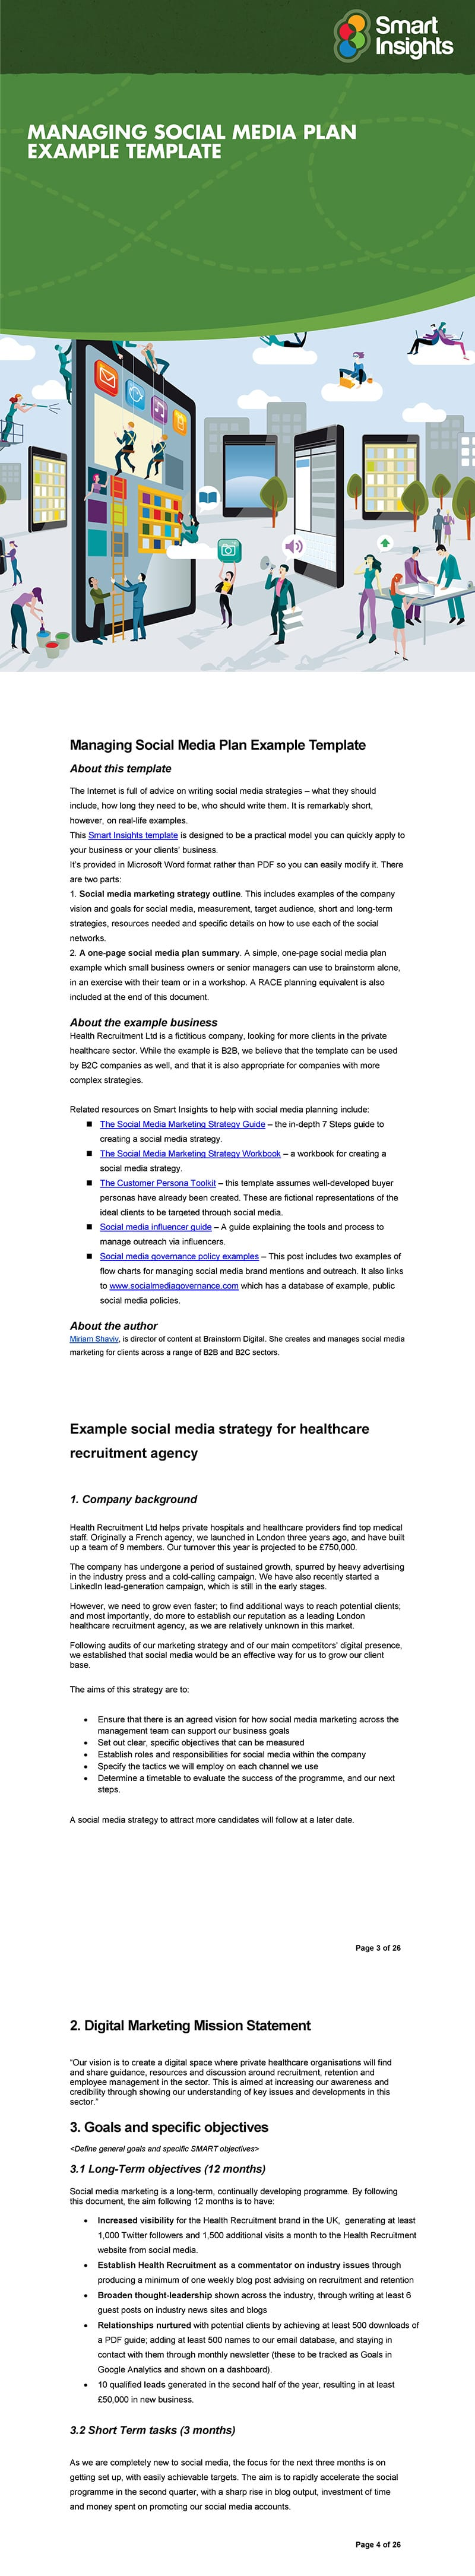 Managing social media plan example template